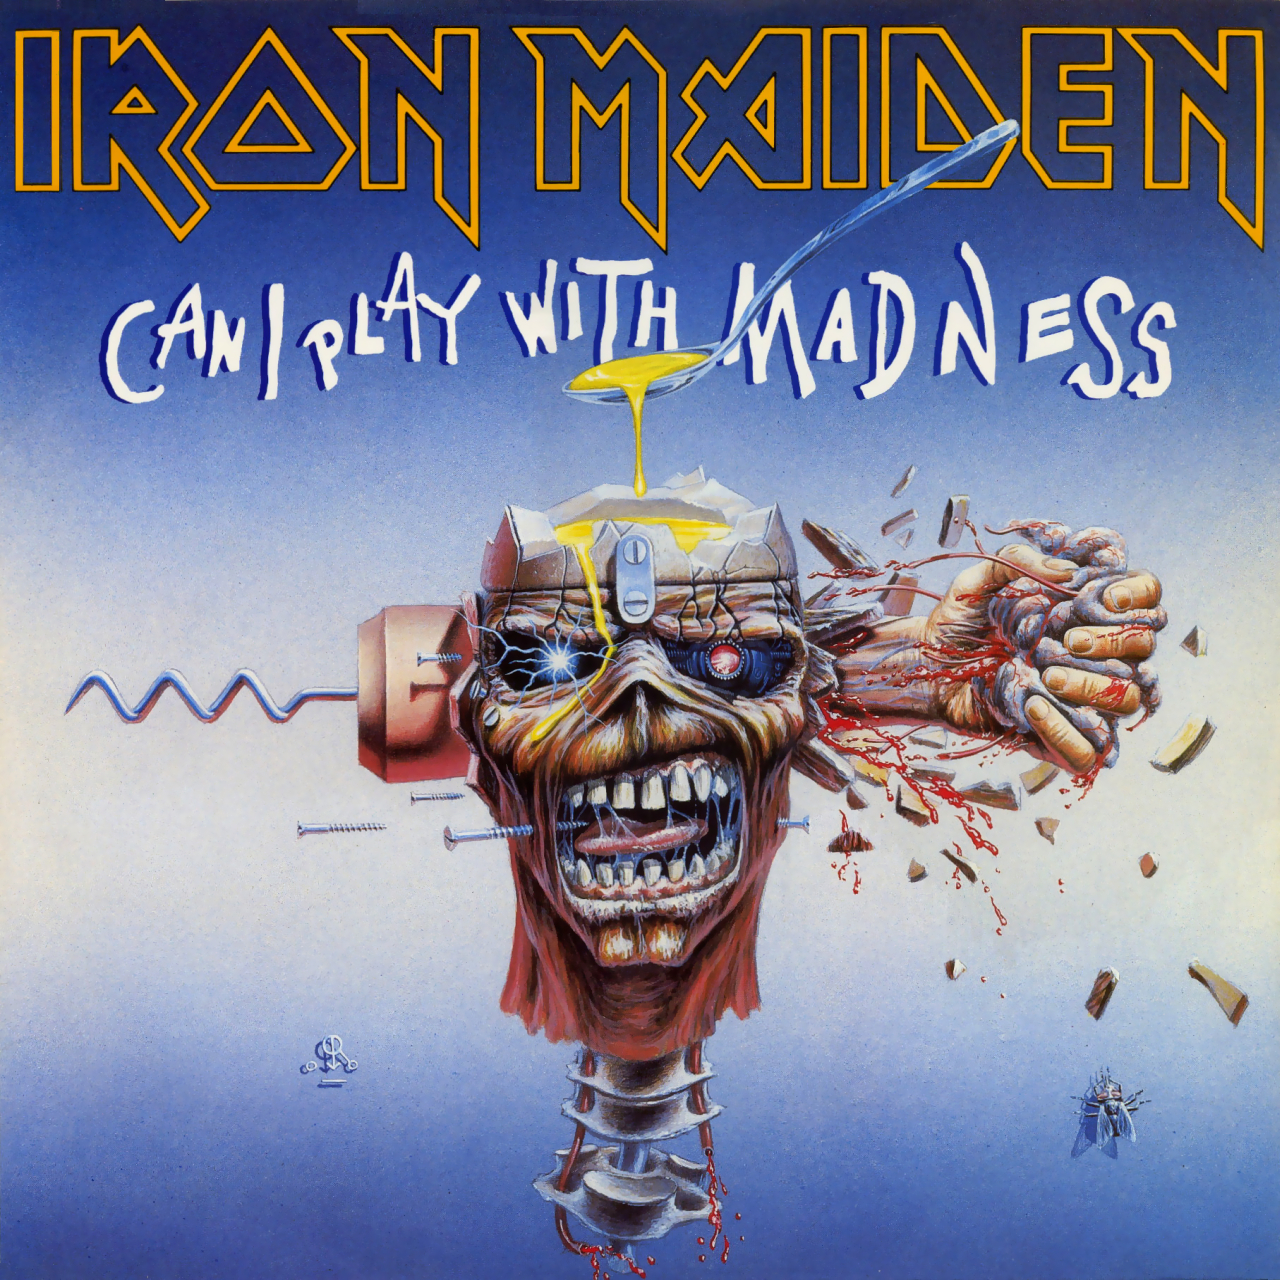 http://1.bp.blogspot.com/-0lxnBGrZqyw/TwNDr9ljJuI/AAAAAAAAAUk/hh1uAE62lgs/s1600/single_iron_maiden_can_i_play_with_madness_ironmaidenwallpaper_com.jpg